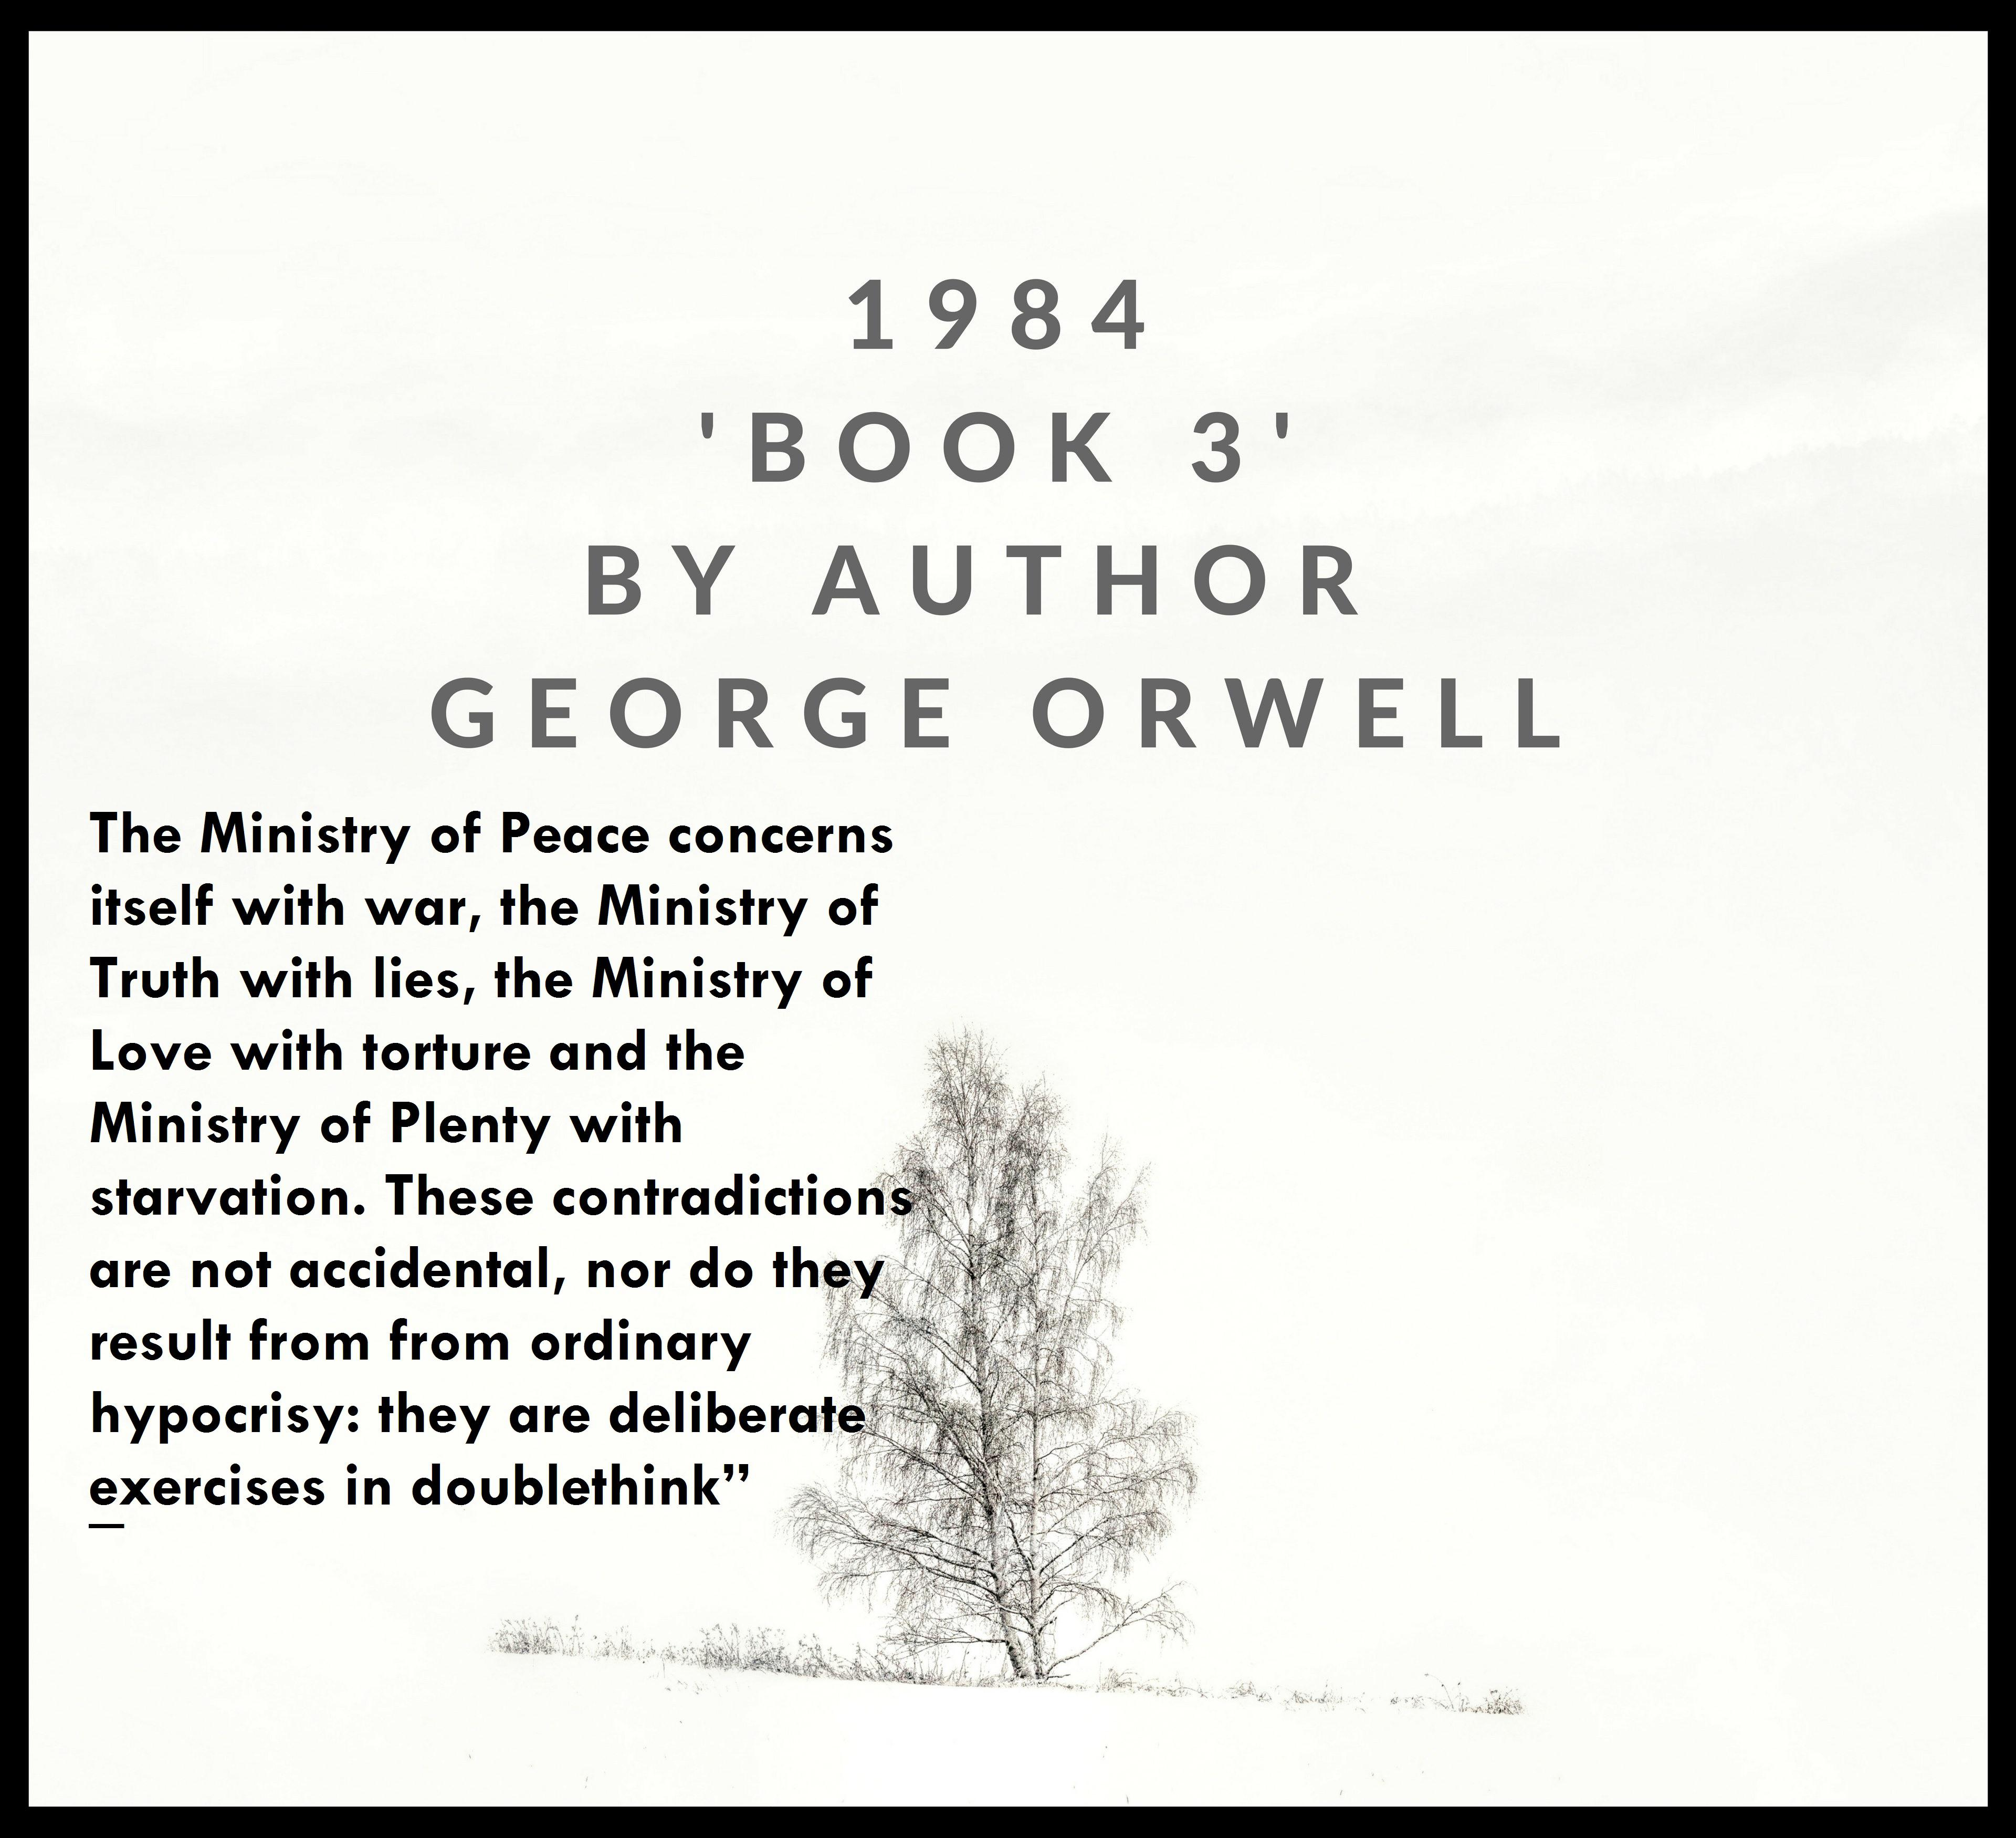 """1984 'BOOK 3' BY AUTHOR GEORGE .RWELL The Ministry of Peace concerns itself with war, the Ministry of Truth with lies, the Ministry of Love with torture and the Ministry of Plenty with starvation. These contradiction'ff"""" are not accidental, nor do th result from from ordinary hypocrisy: they are deliberatéifi exercises in doublethink"""" . '4 'J« g i '. 7 l  https://inspirational.ly"""